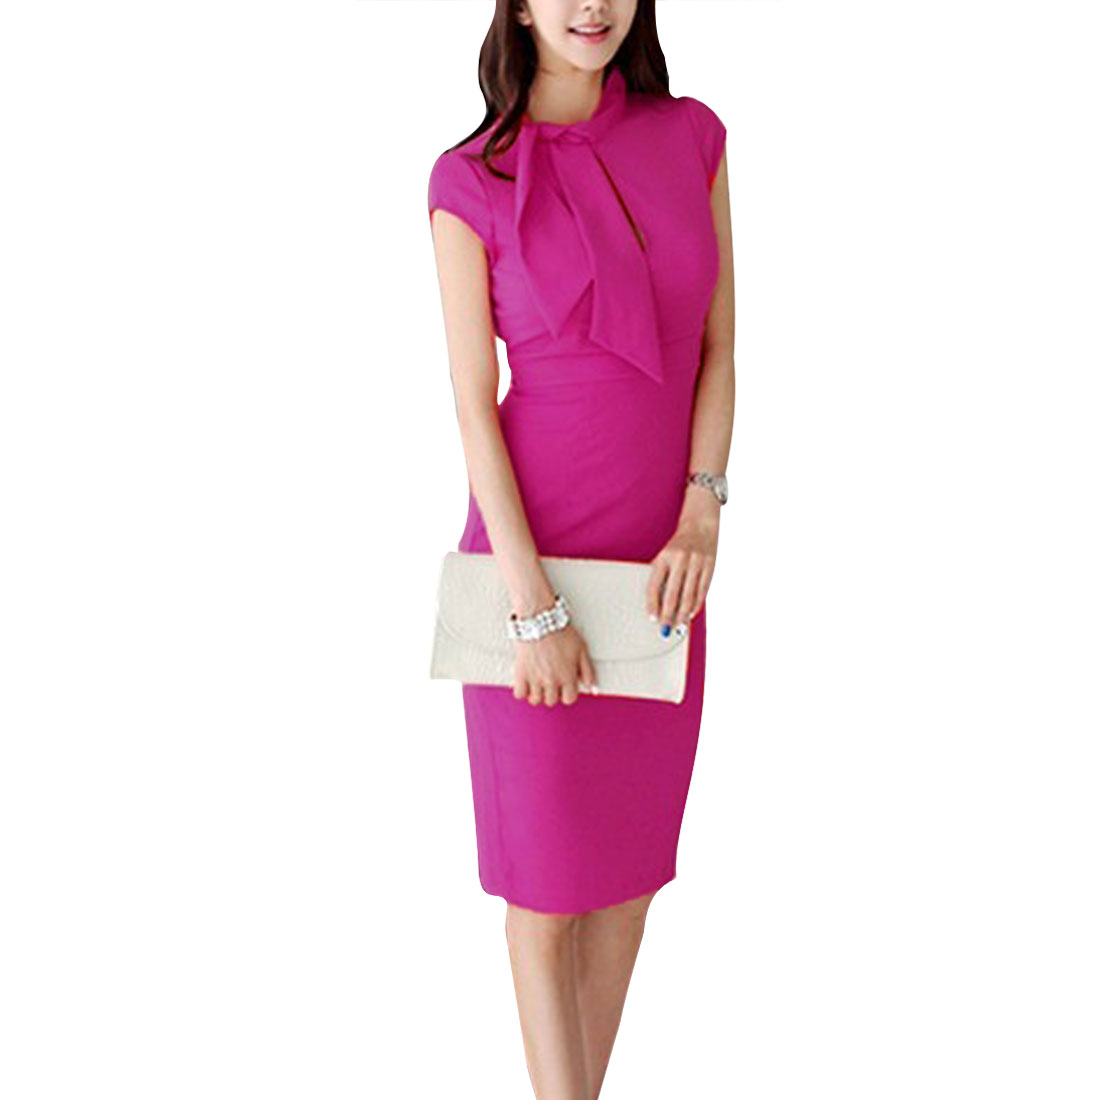 Ladies Fuchsia XS Solid Color Pullover Mock Neck Style Slim Fit Sexy Dress